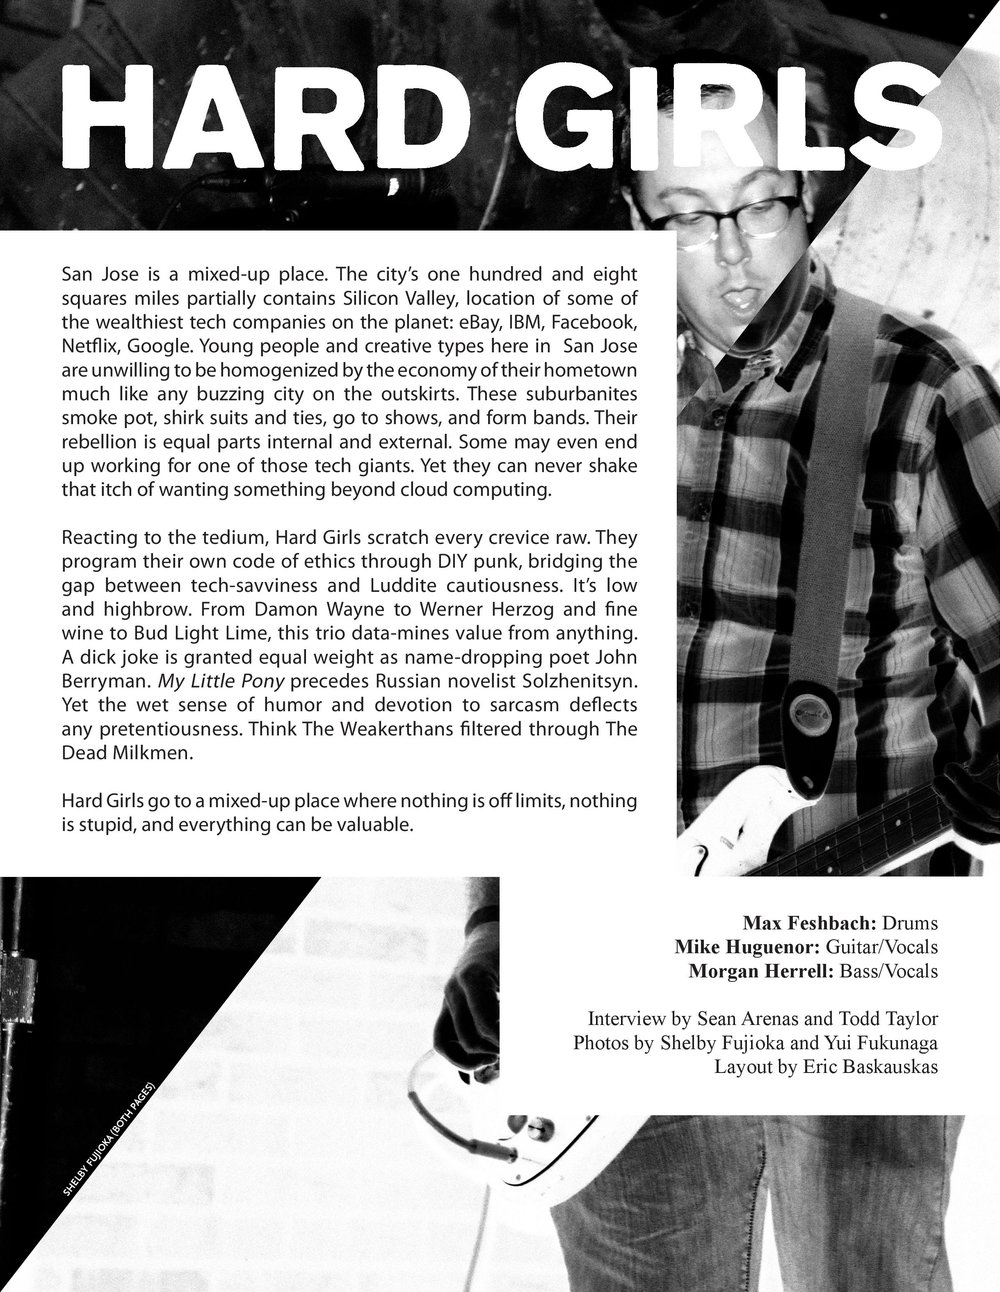 hard_girls_interview-page-001.jpg